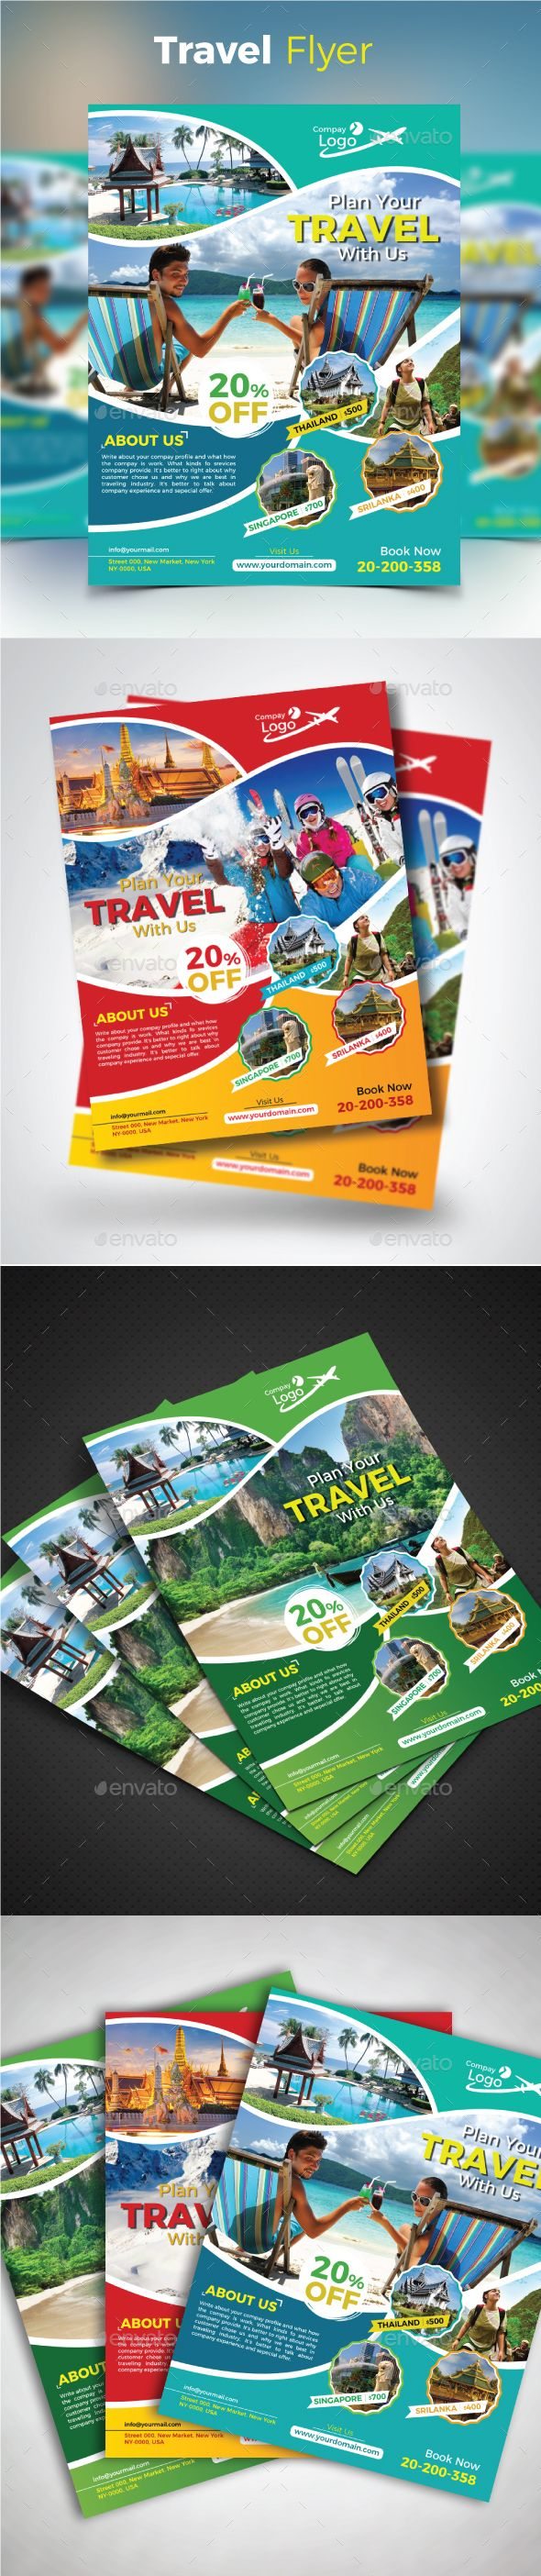 Travel Flyer — Vector EPS #hotel #tour • Available here → https://graphicriver.net/item/travel-flyer/20646689?ref=pxcr